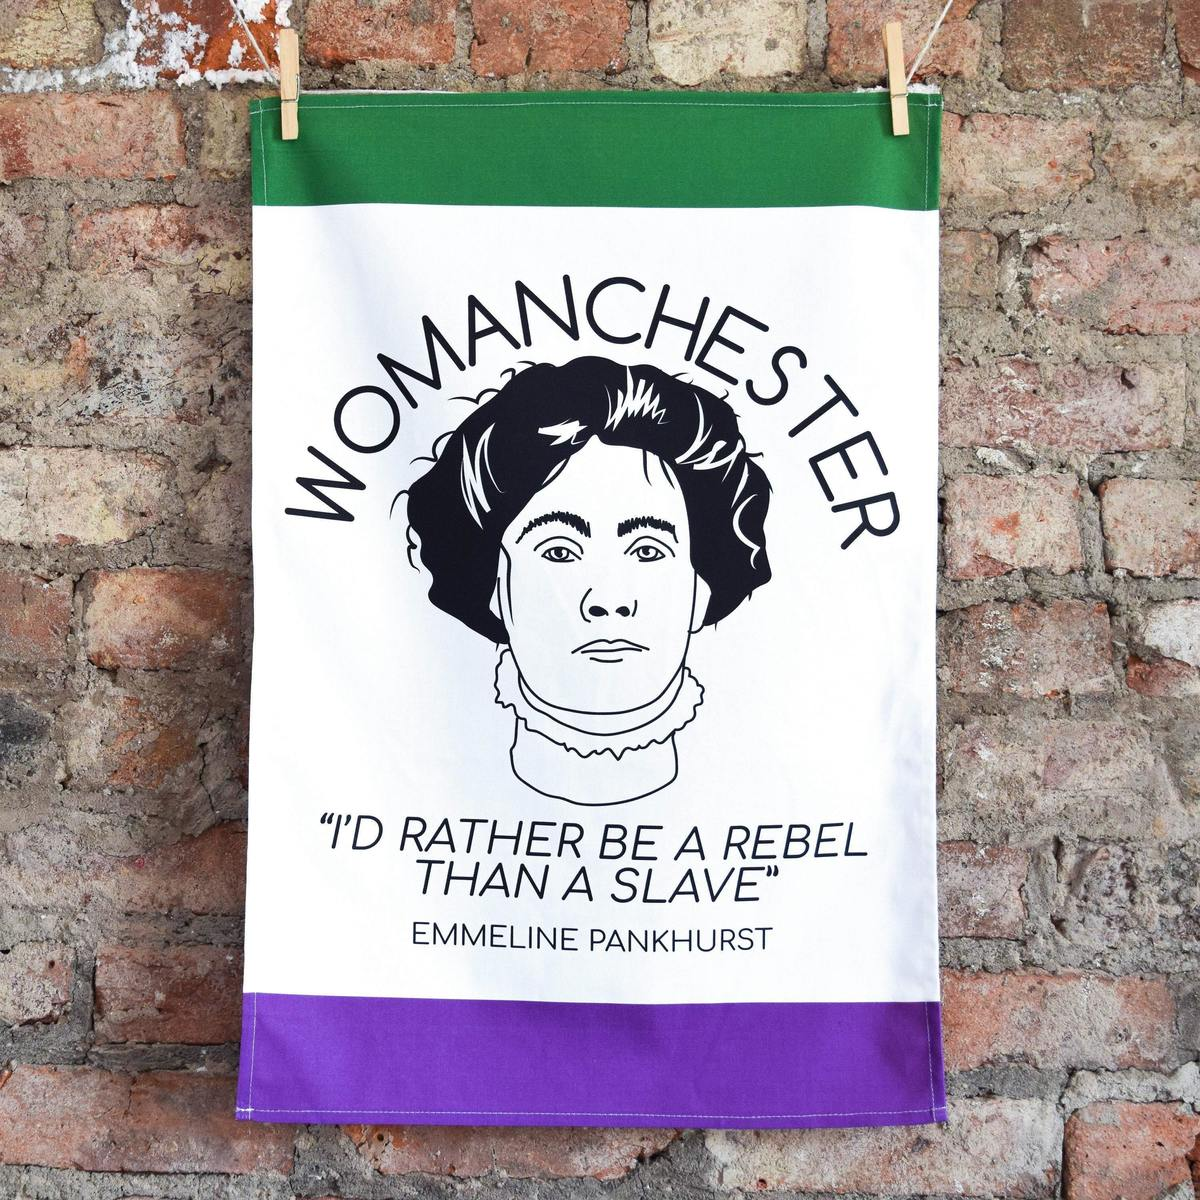 Womanchester - The Manchester Shop